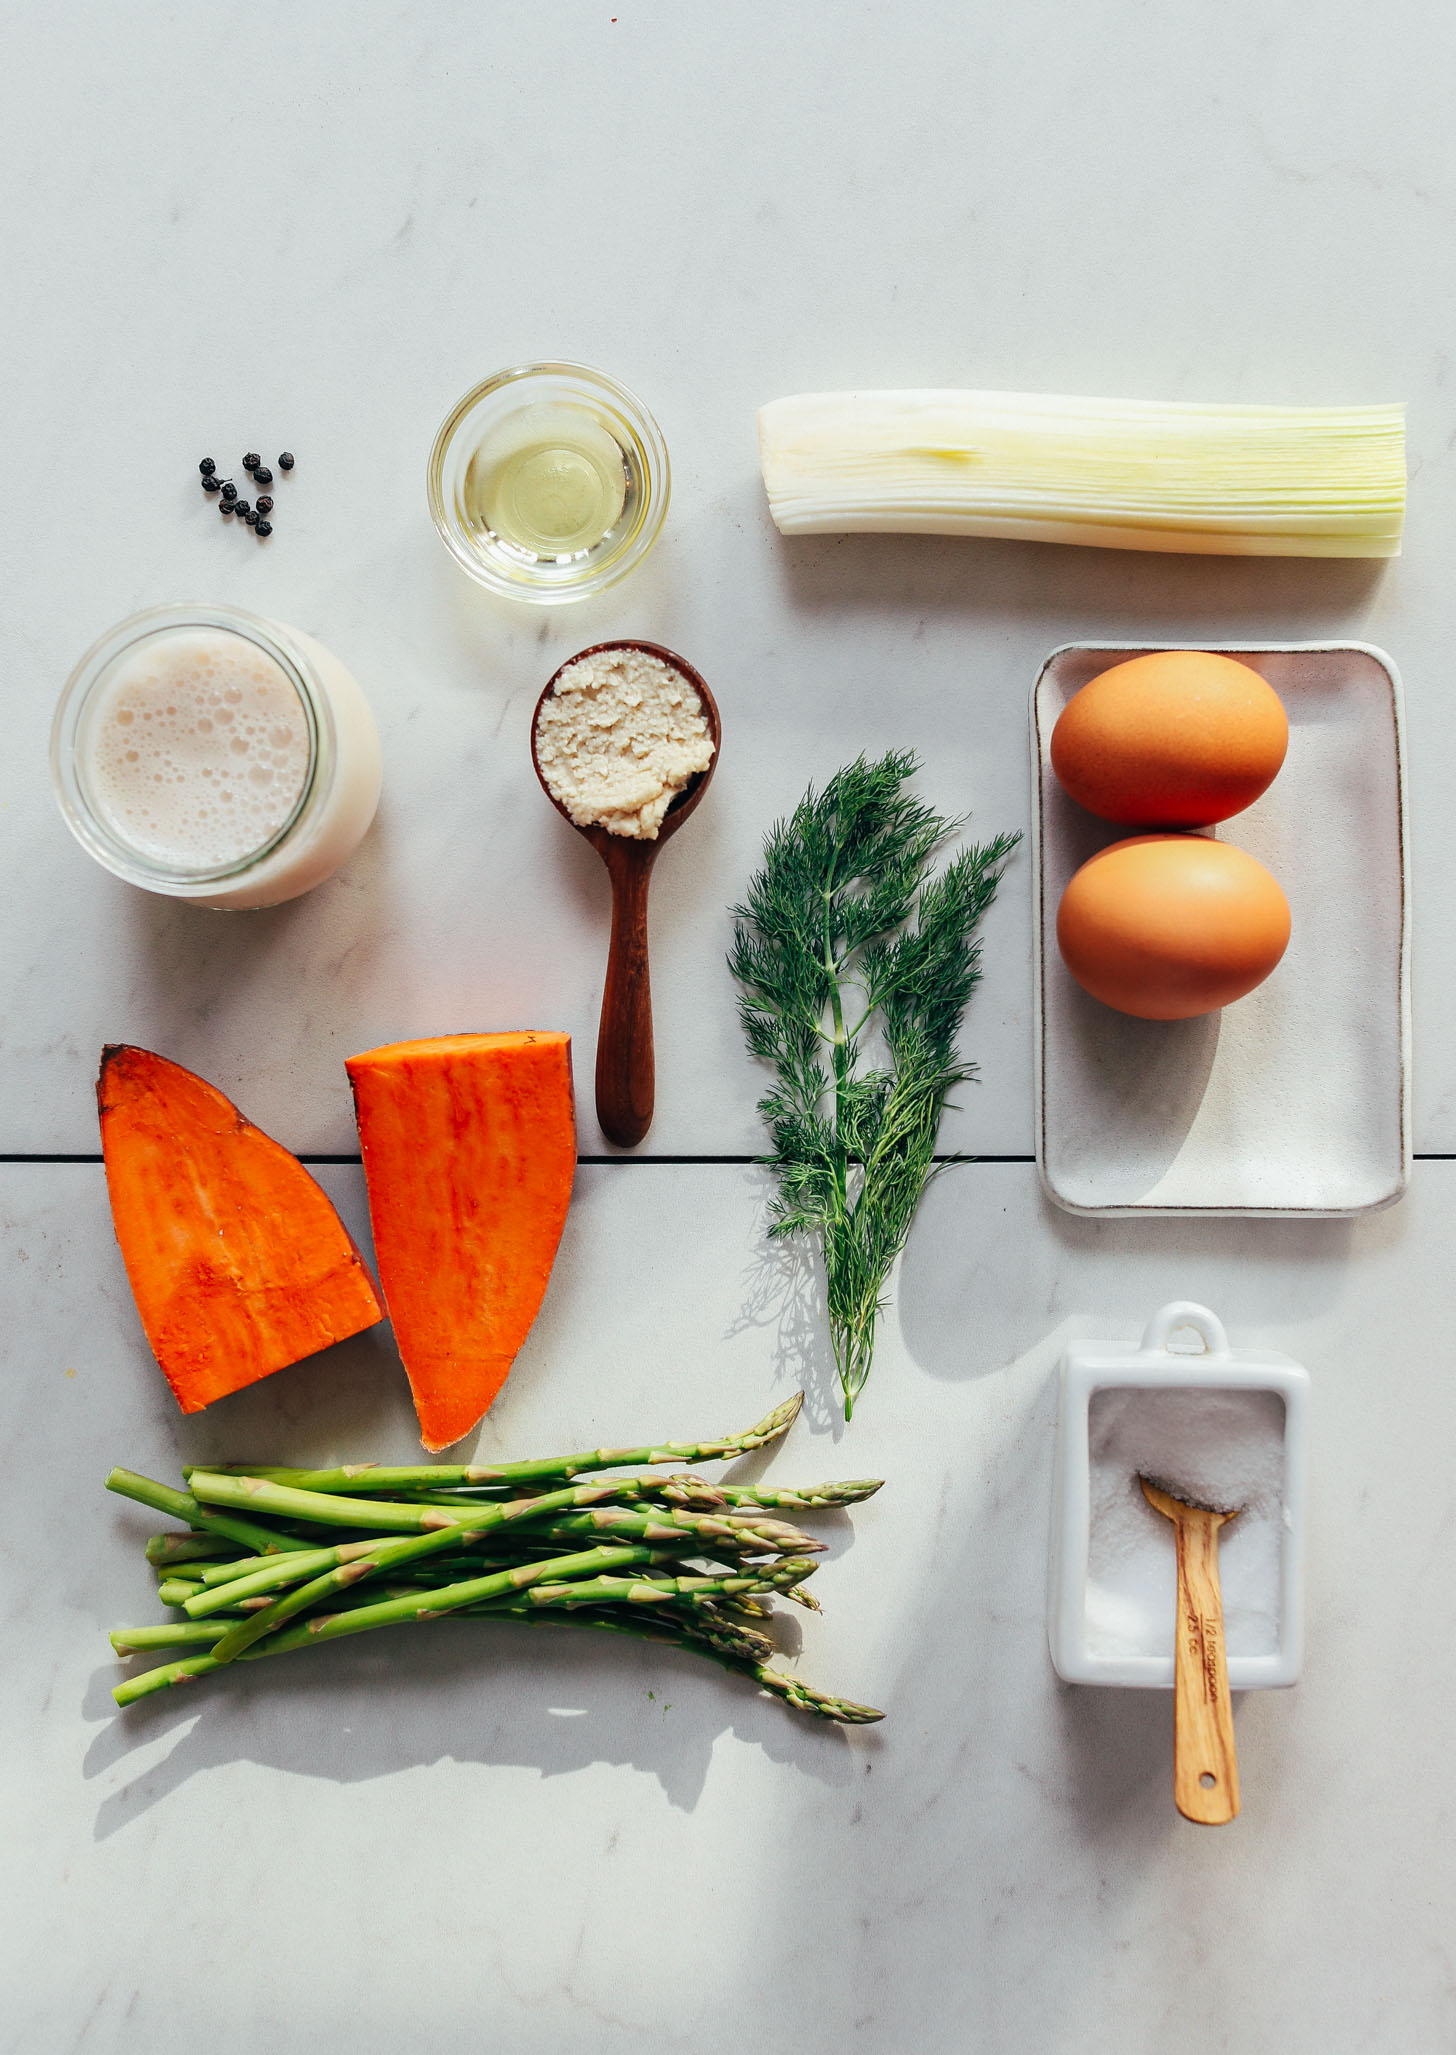 Asparagus, sweet potato, leek, dill, eggs, and other ingredients for making our Spring Frittata recipe